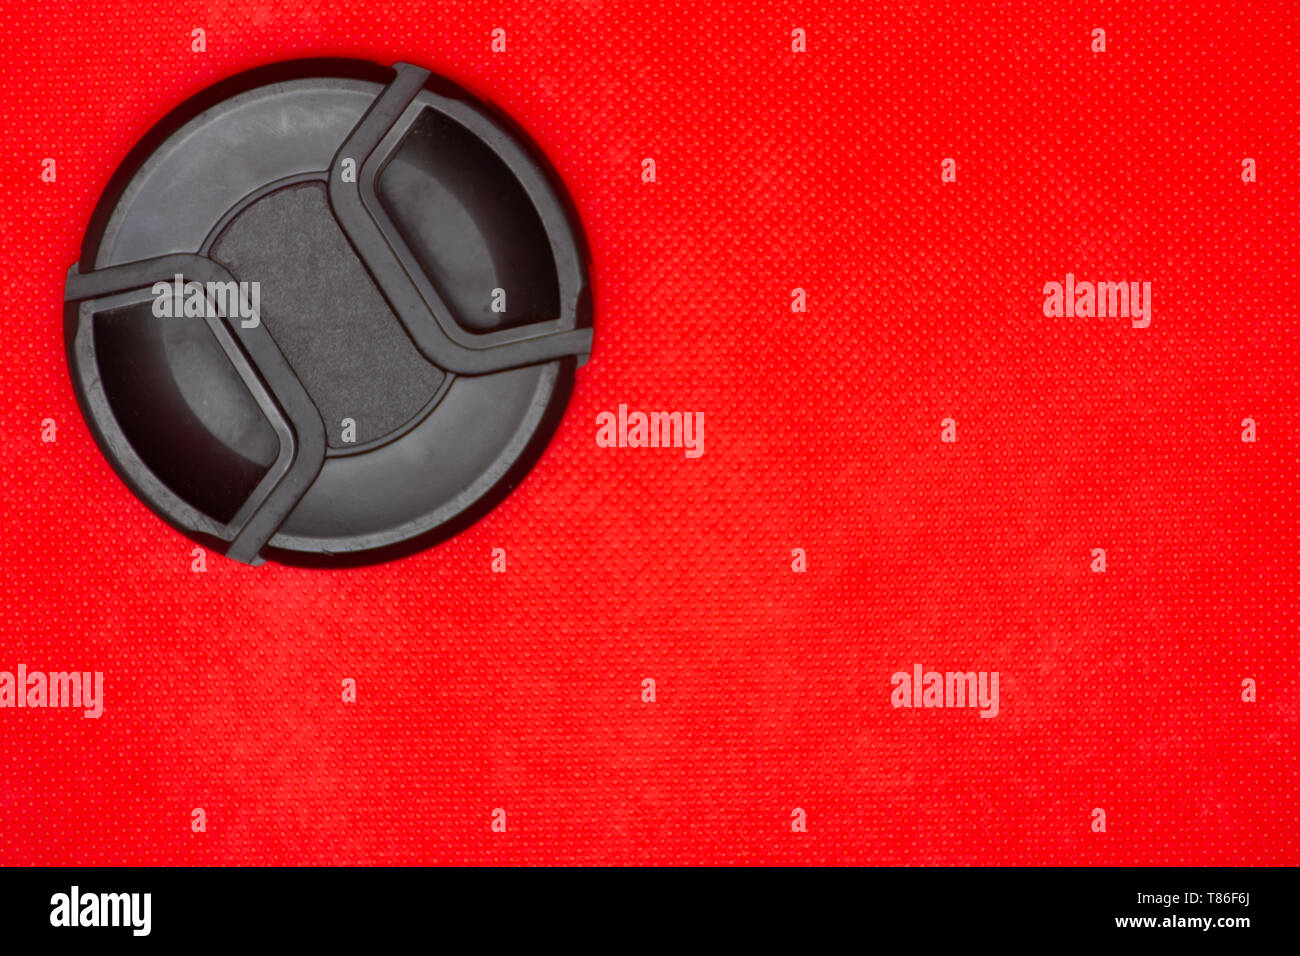 Close up of a black circle lens cap top left corner for DSLR camera lens on a rich red background. - Stock Image